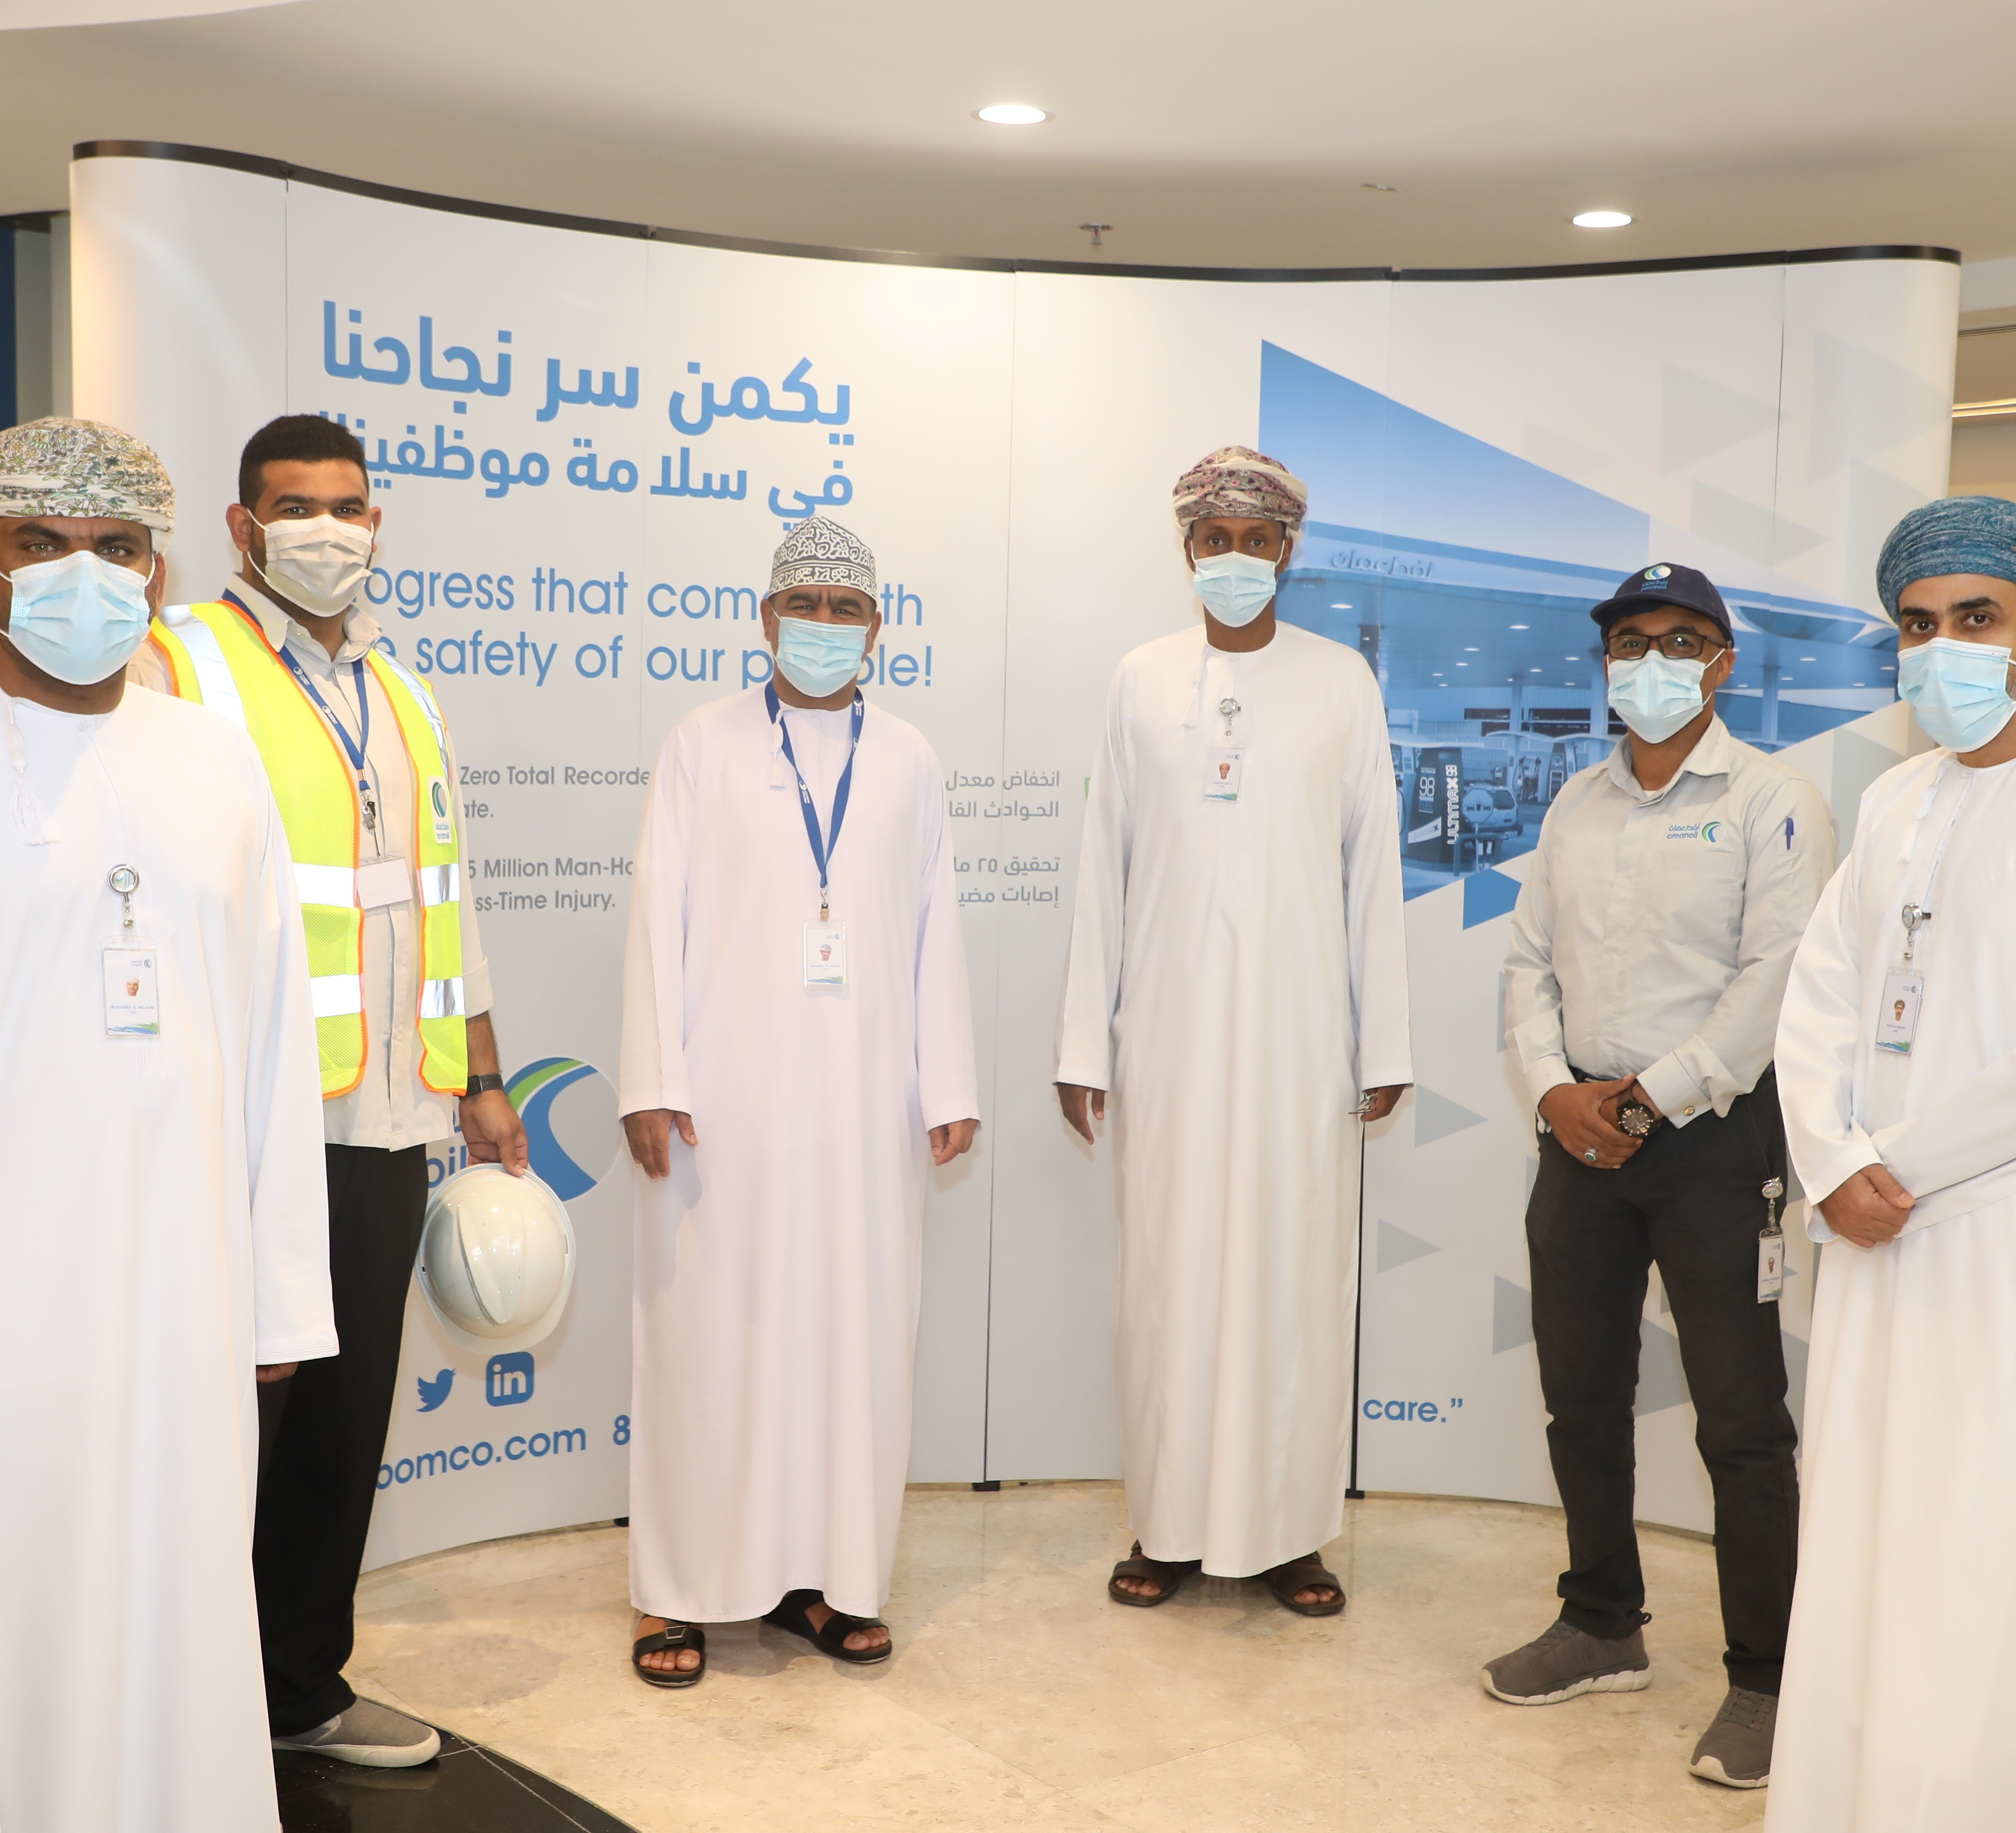 OMAN OIL MARKETING COMPANY CELEBRATES 25 MILLION HOURS WITH ZERO RECORDABLE INJURIES